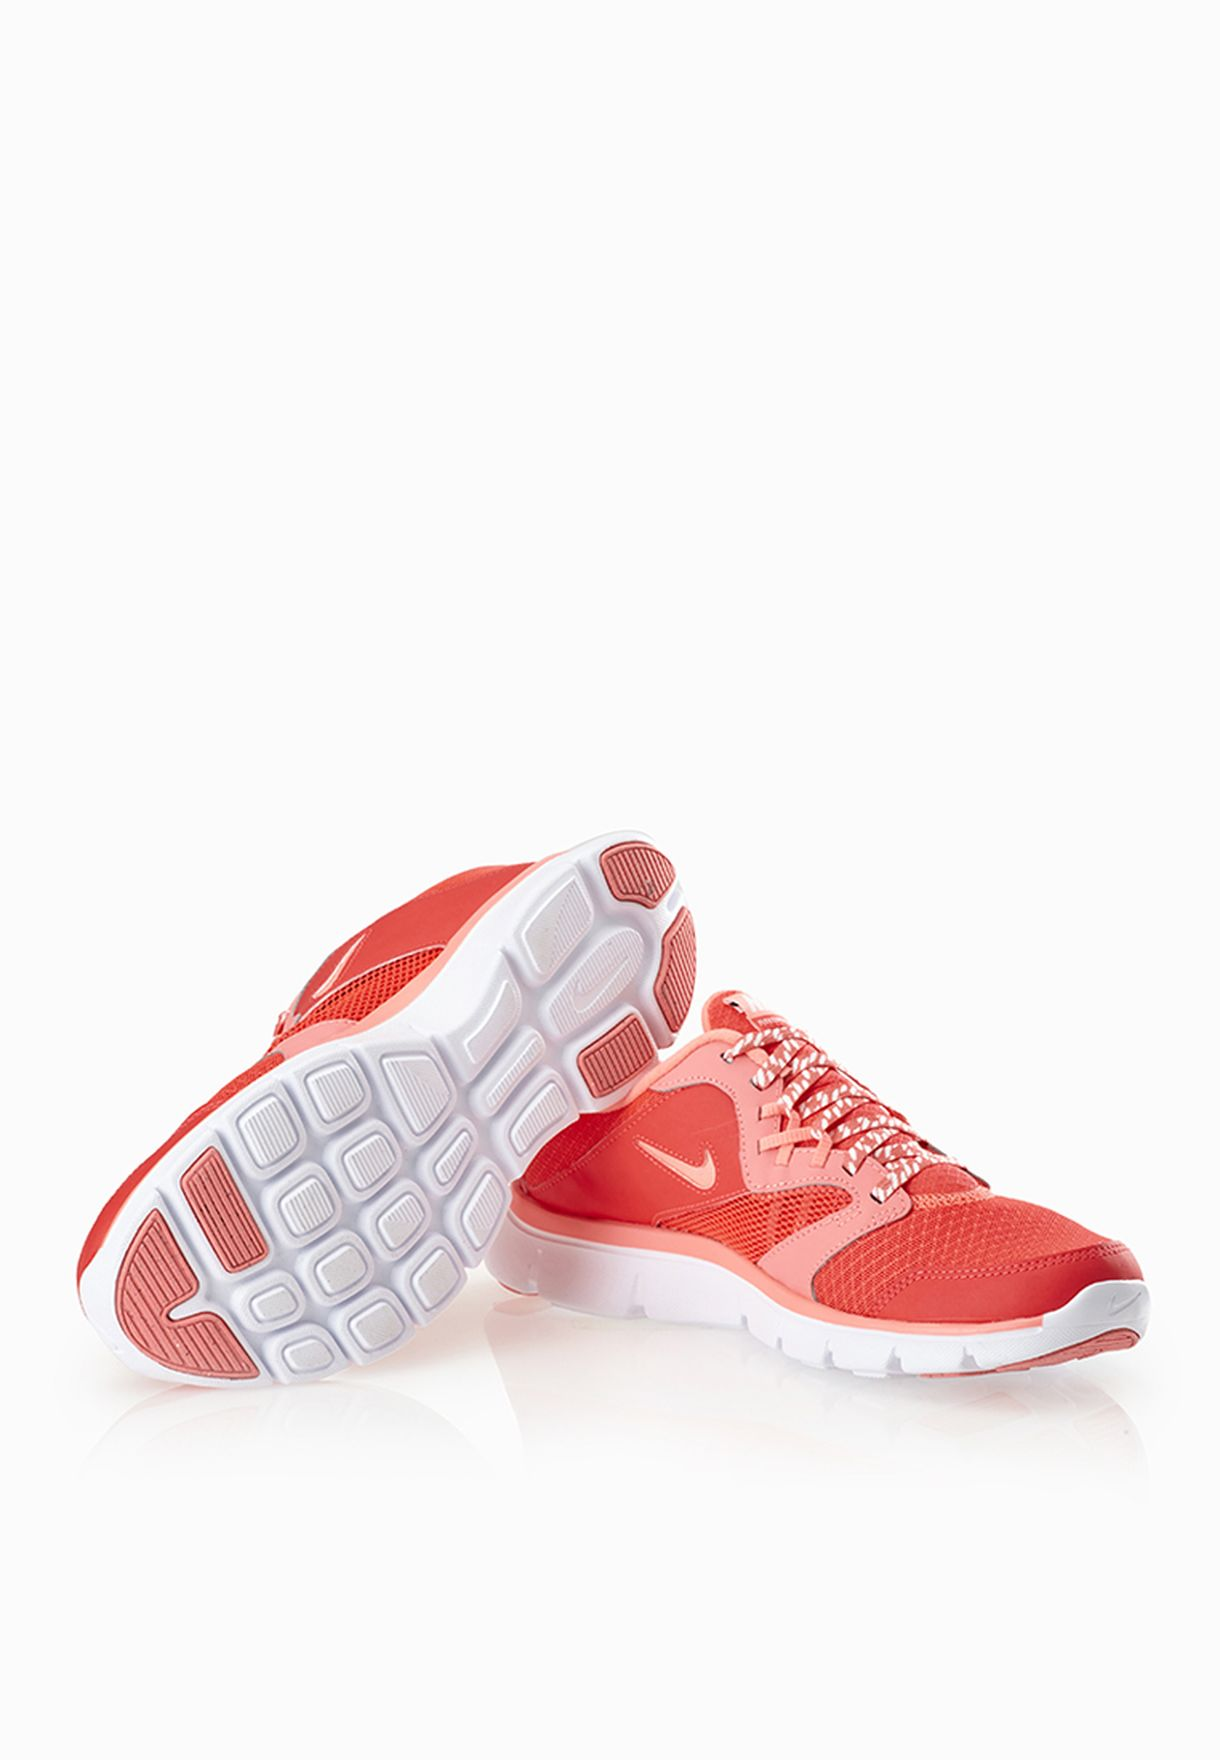 buy online 71b4f 54356 Shop Nike pink Flx Experience Rn 3 Msl 652858-602 for Women in ...